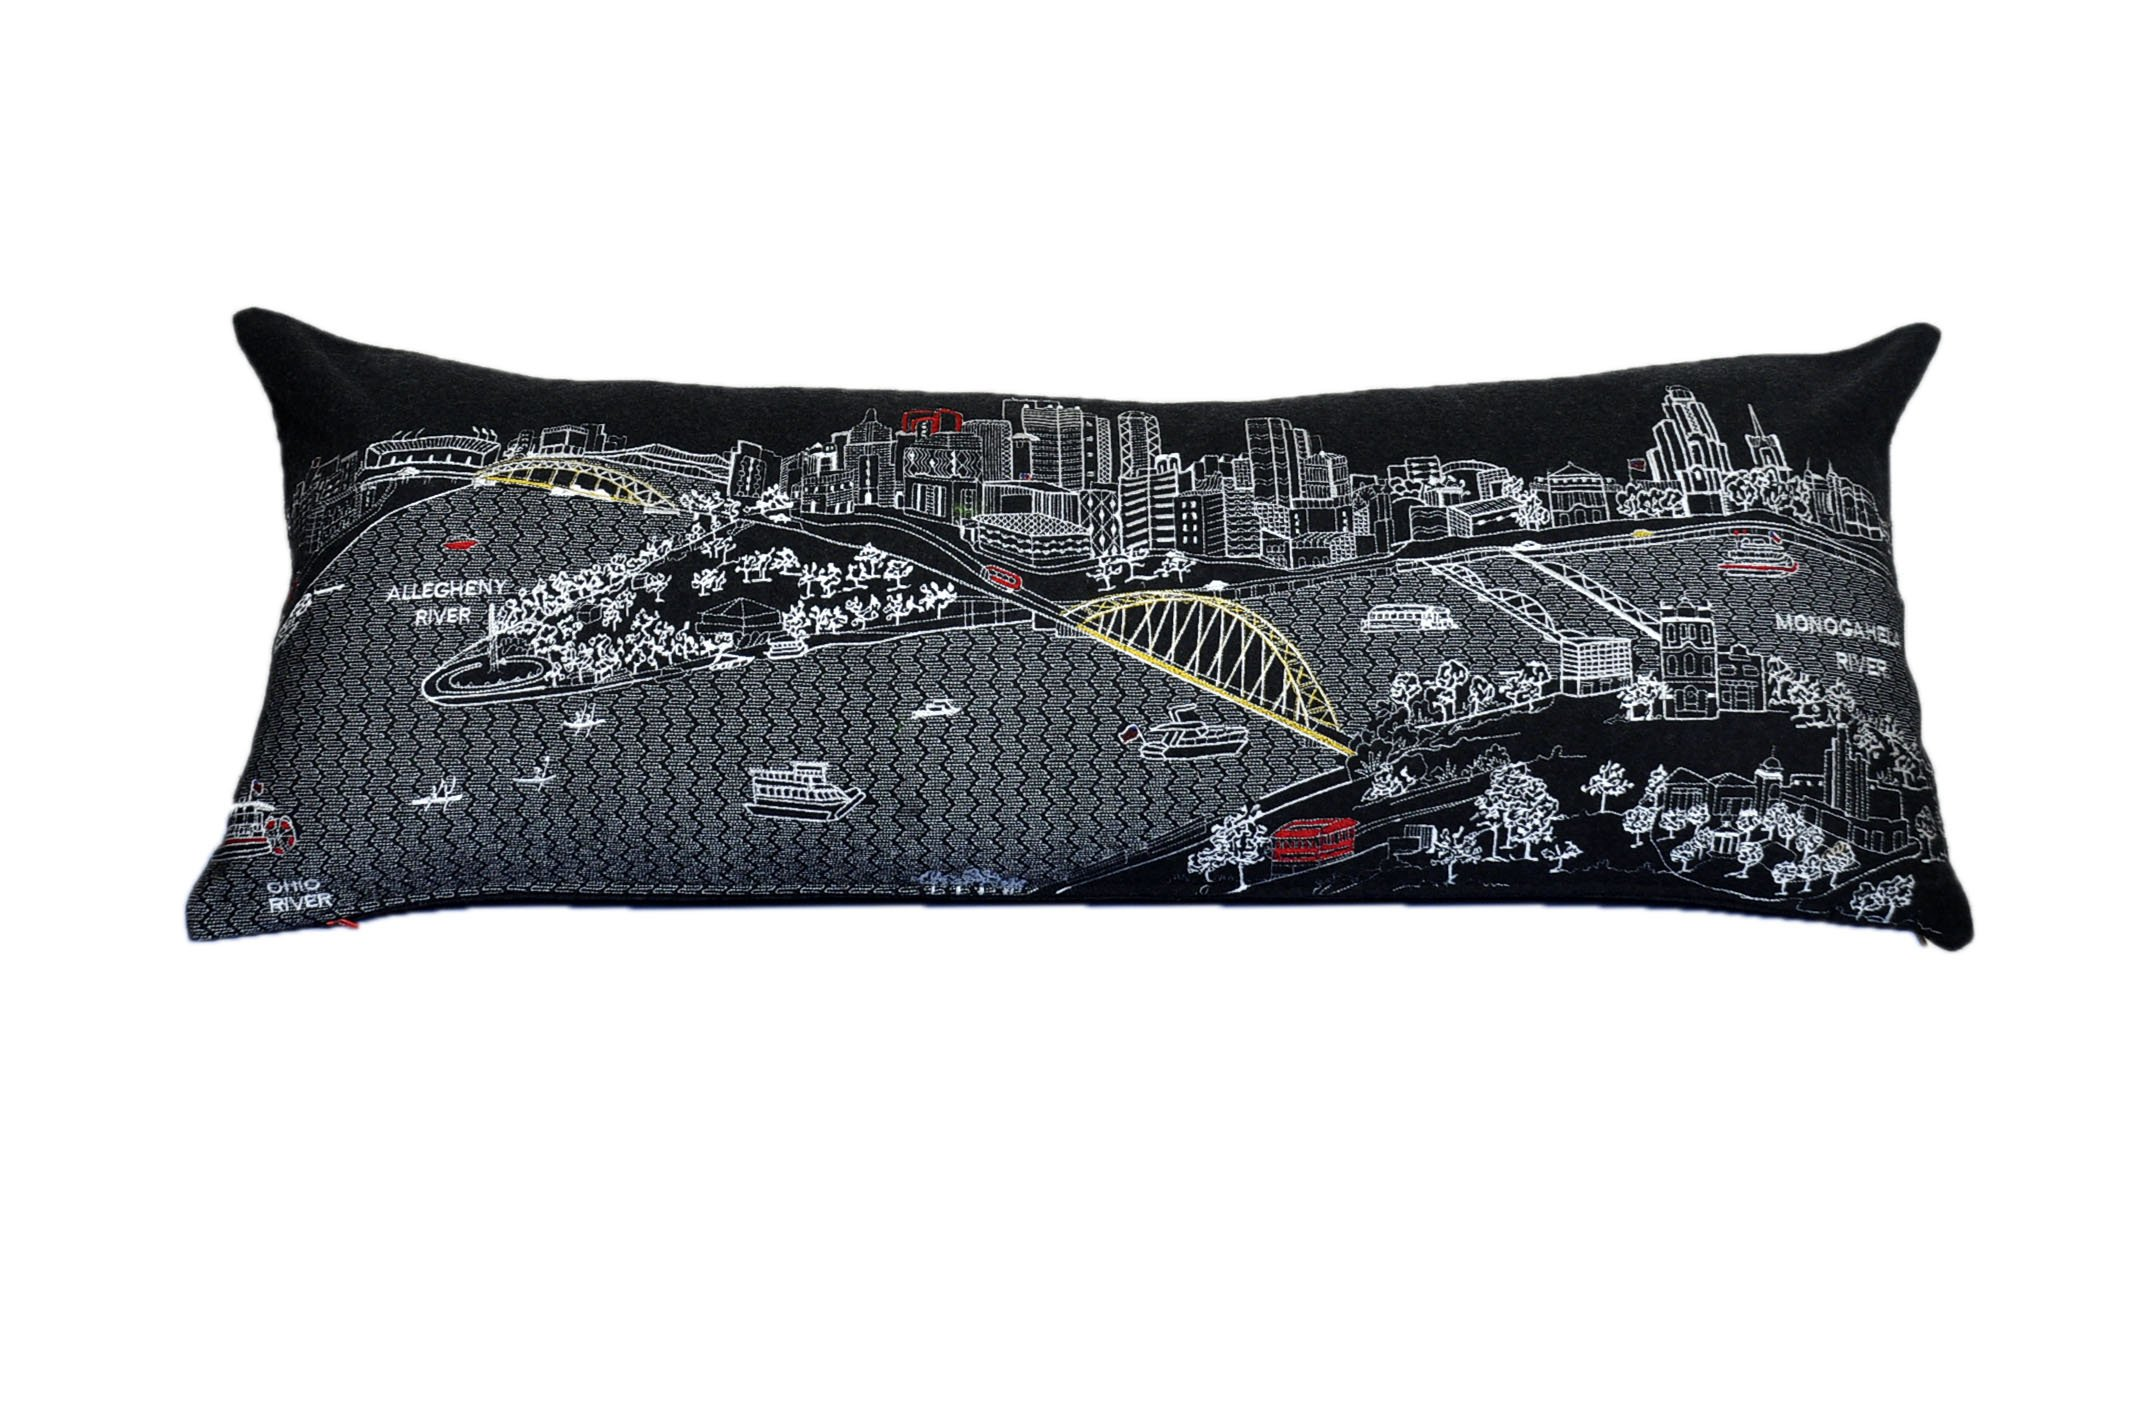 Beyond Cushions Polyester Throw Pillows Beyond Cushions Pittsburgh Night Skyline Queen Size Embroidered Accent Pillow 35 X 14 X 5 Inches Black Model # PIT-NGT-QUN